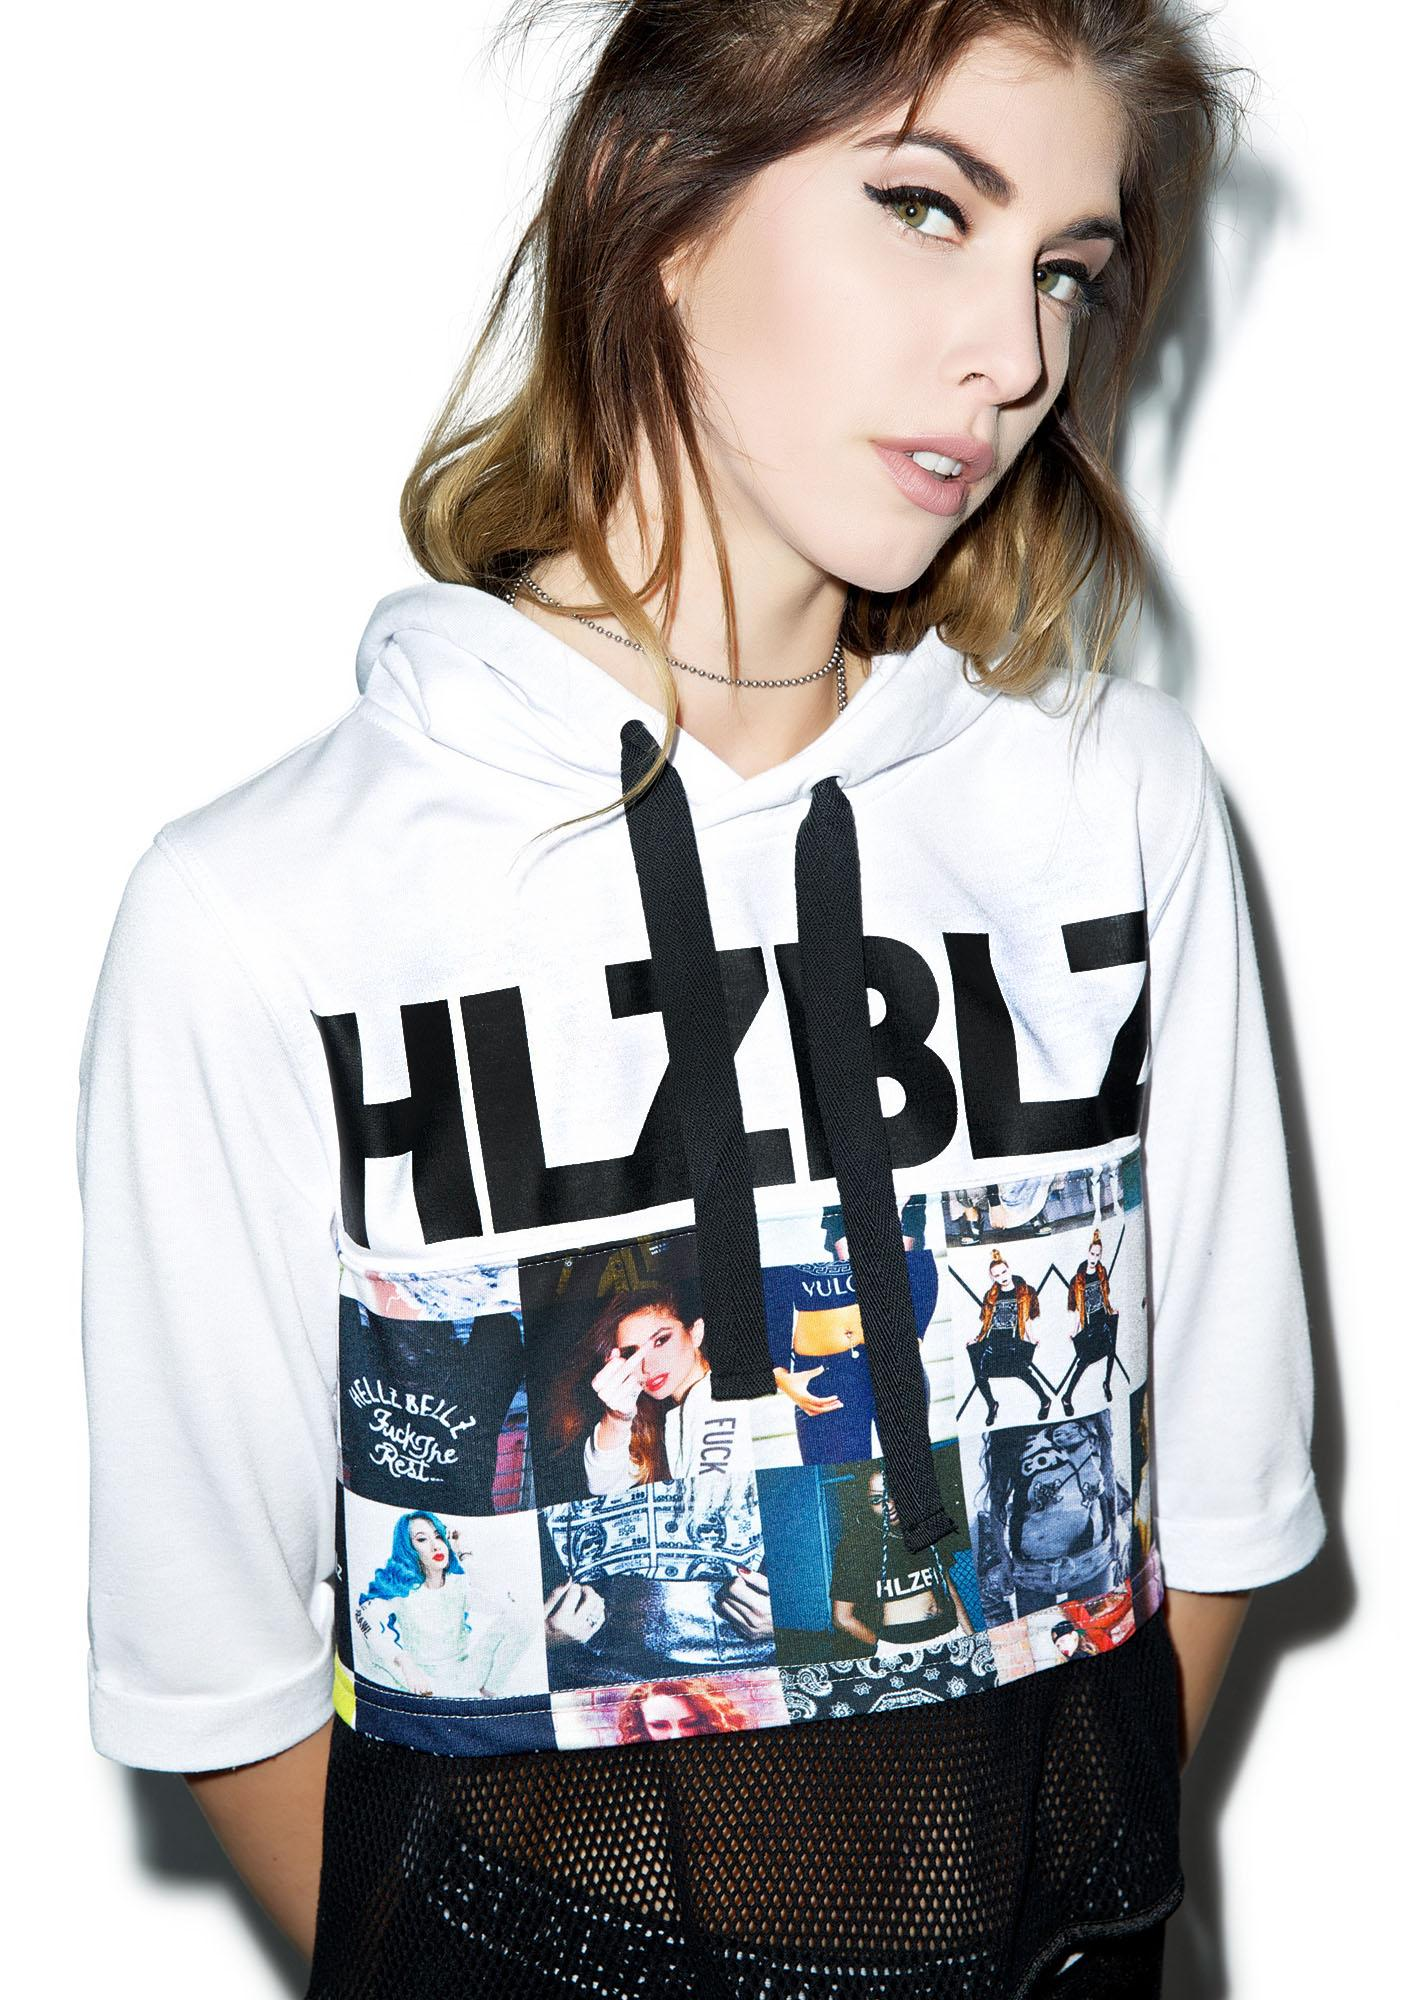 HLZBLZ #BadBitches Hooded Crop Top